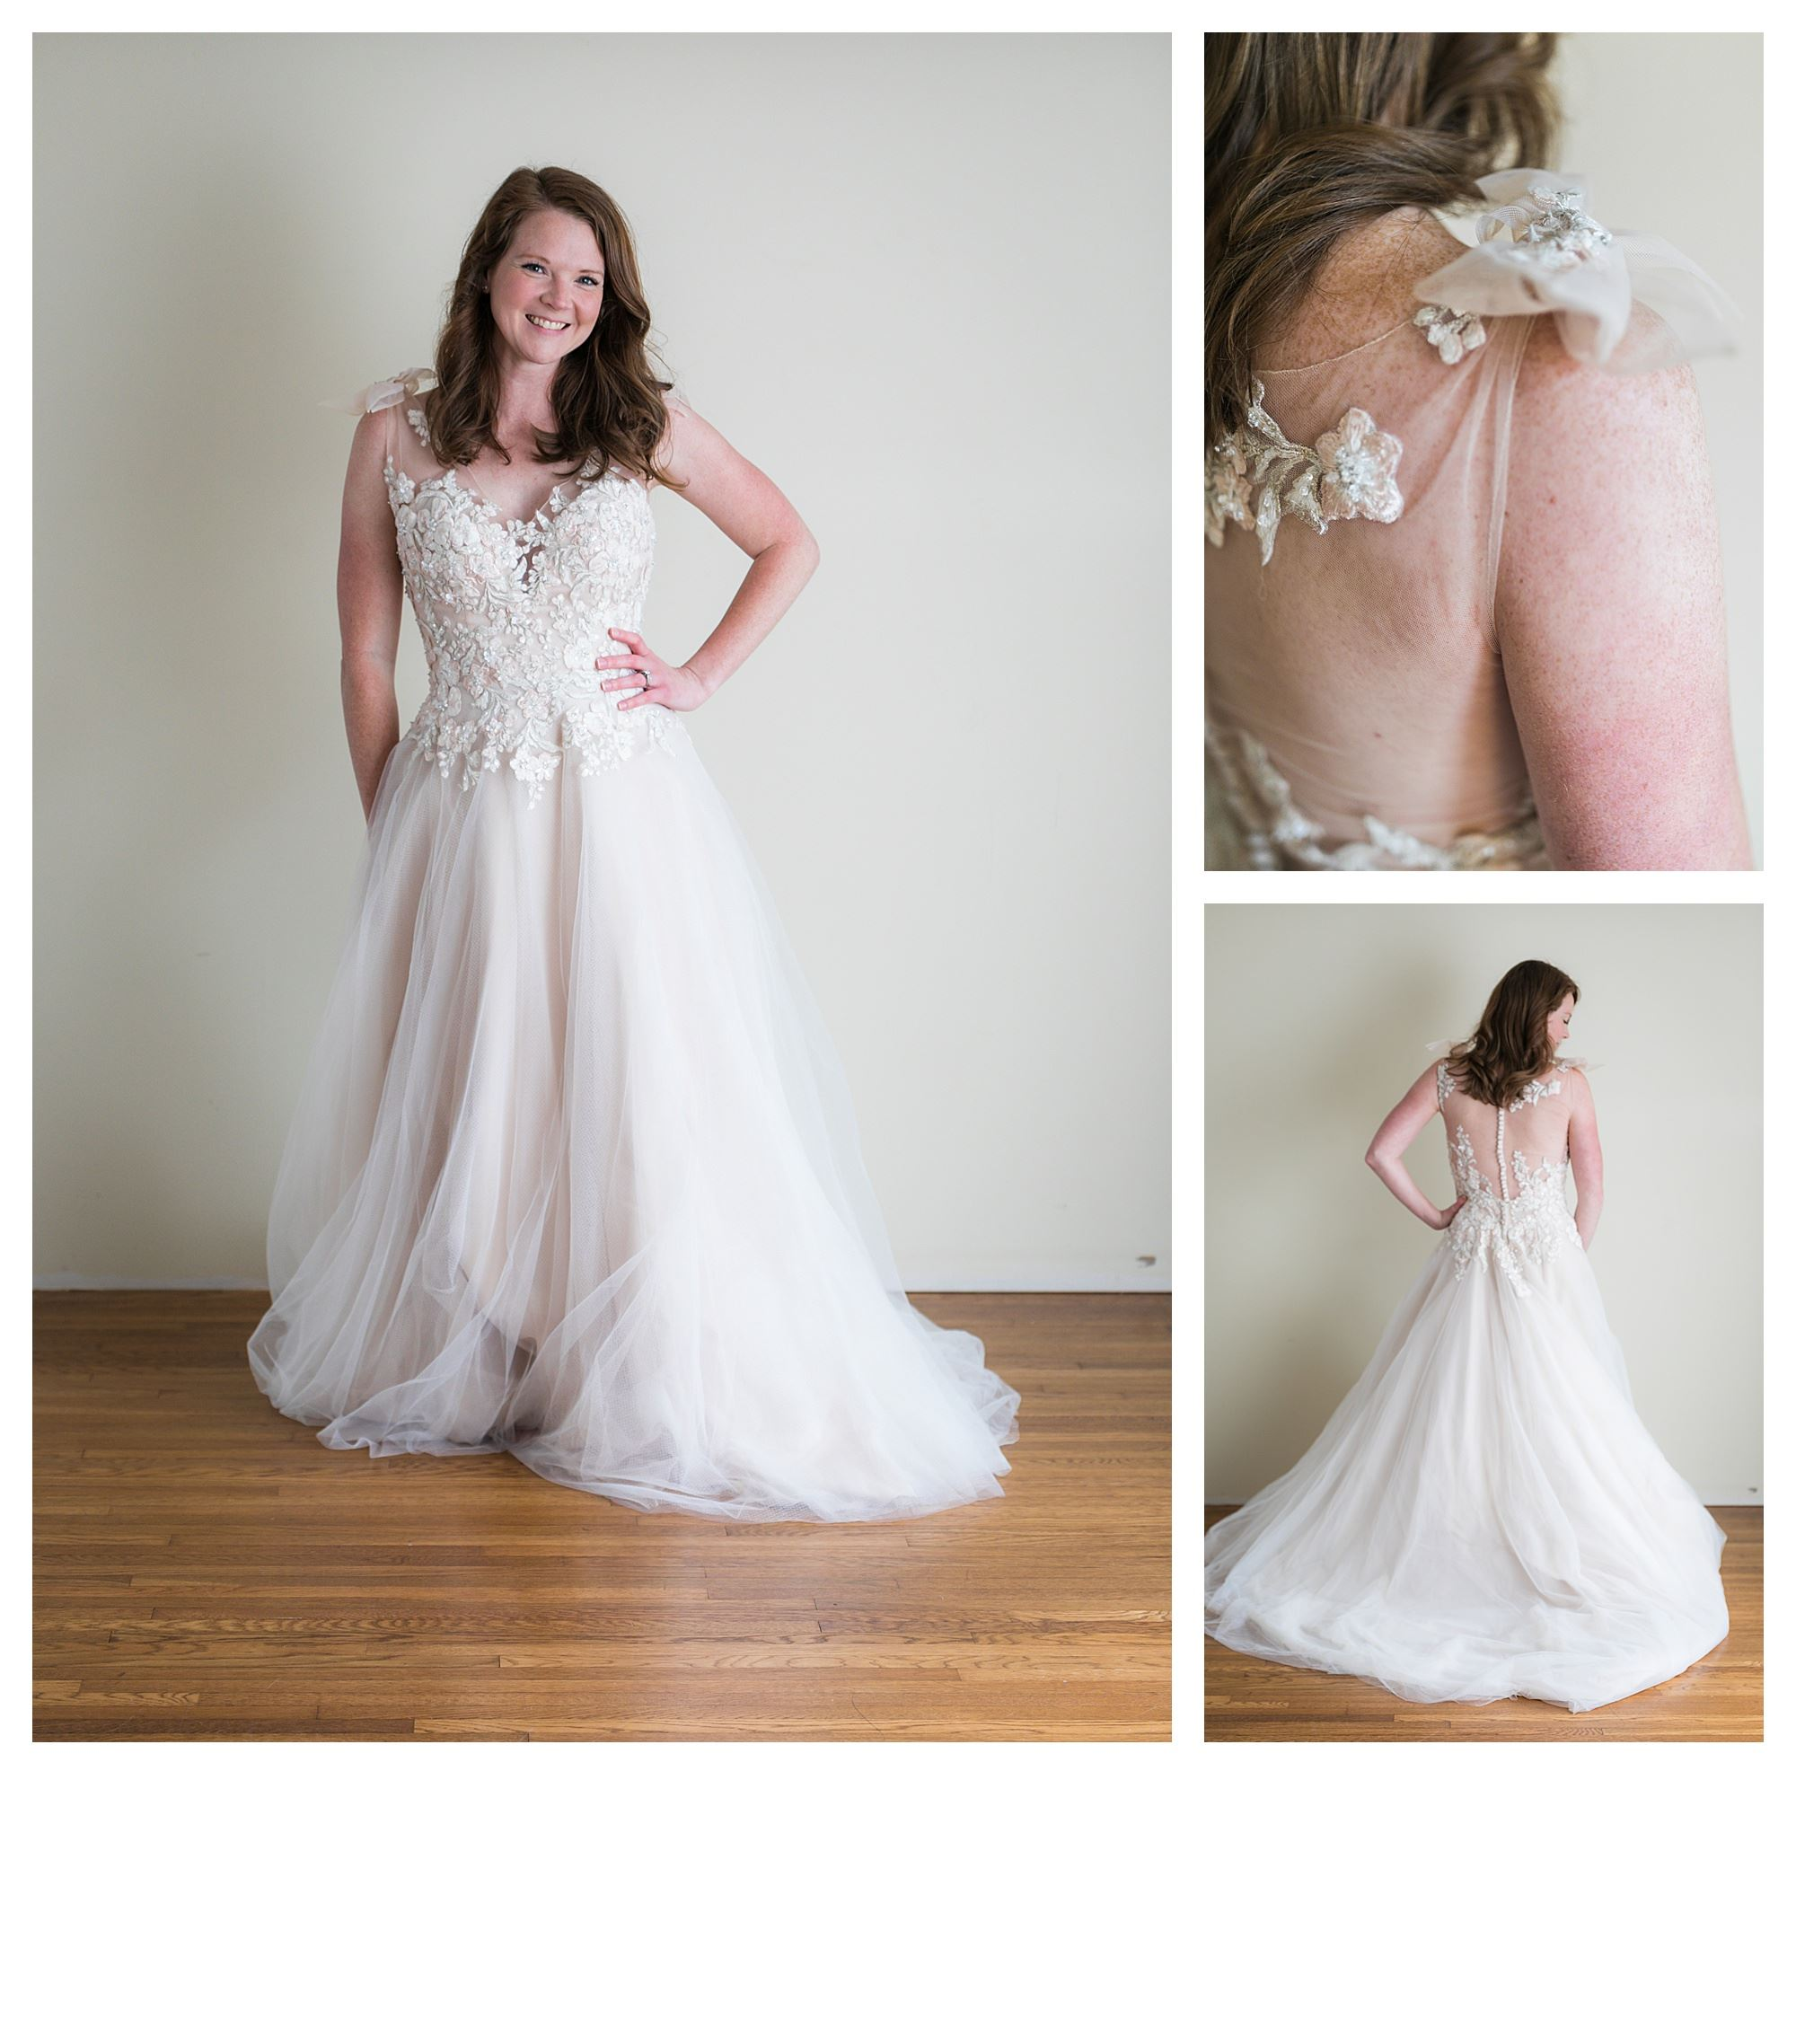 Stormy - Size 12 - Ivory/Lt. Blush - Originally priced $1599 - Sample box price $1099